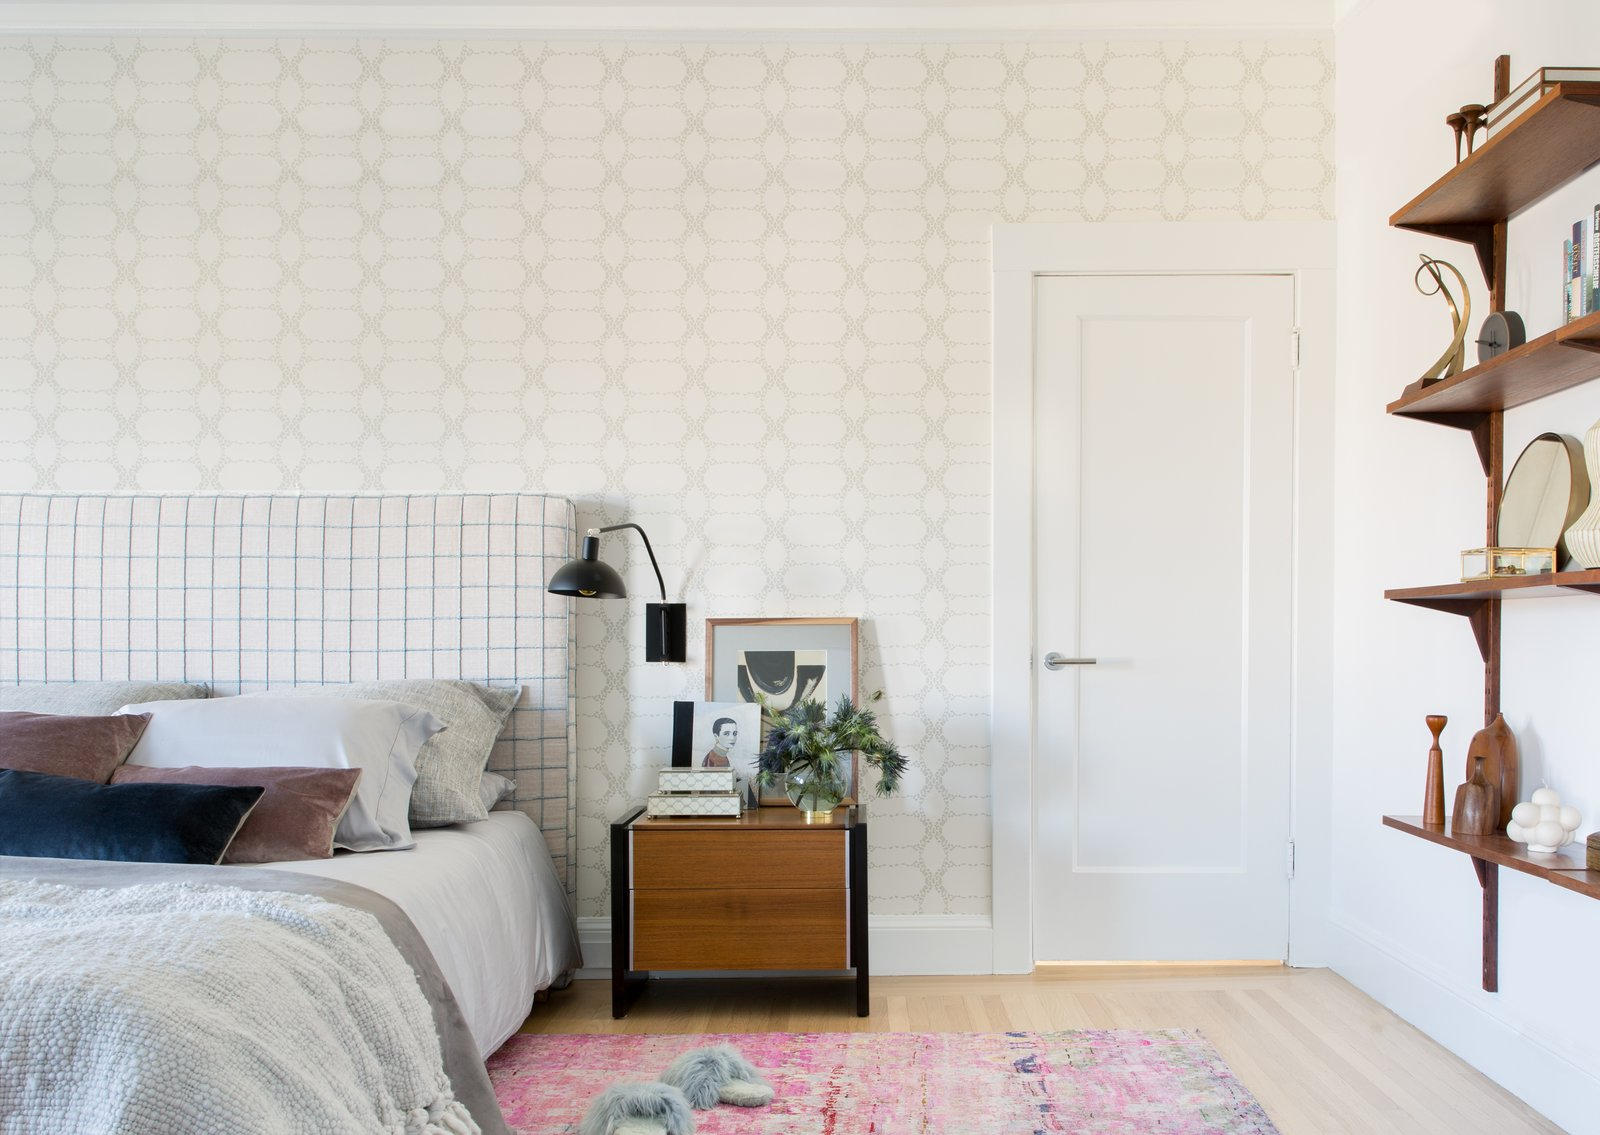 Bedroom, Shelves, Light Hardwood Floor, Night Stands, Wall Lighting, and Bed Master bedroom with patterned headboard and wallpaper.  Sea Cliff Preppy Contemporary